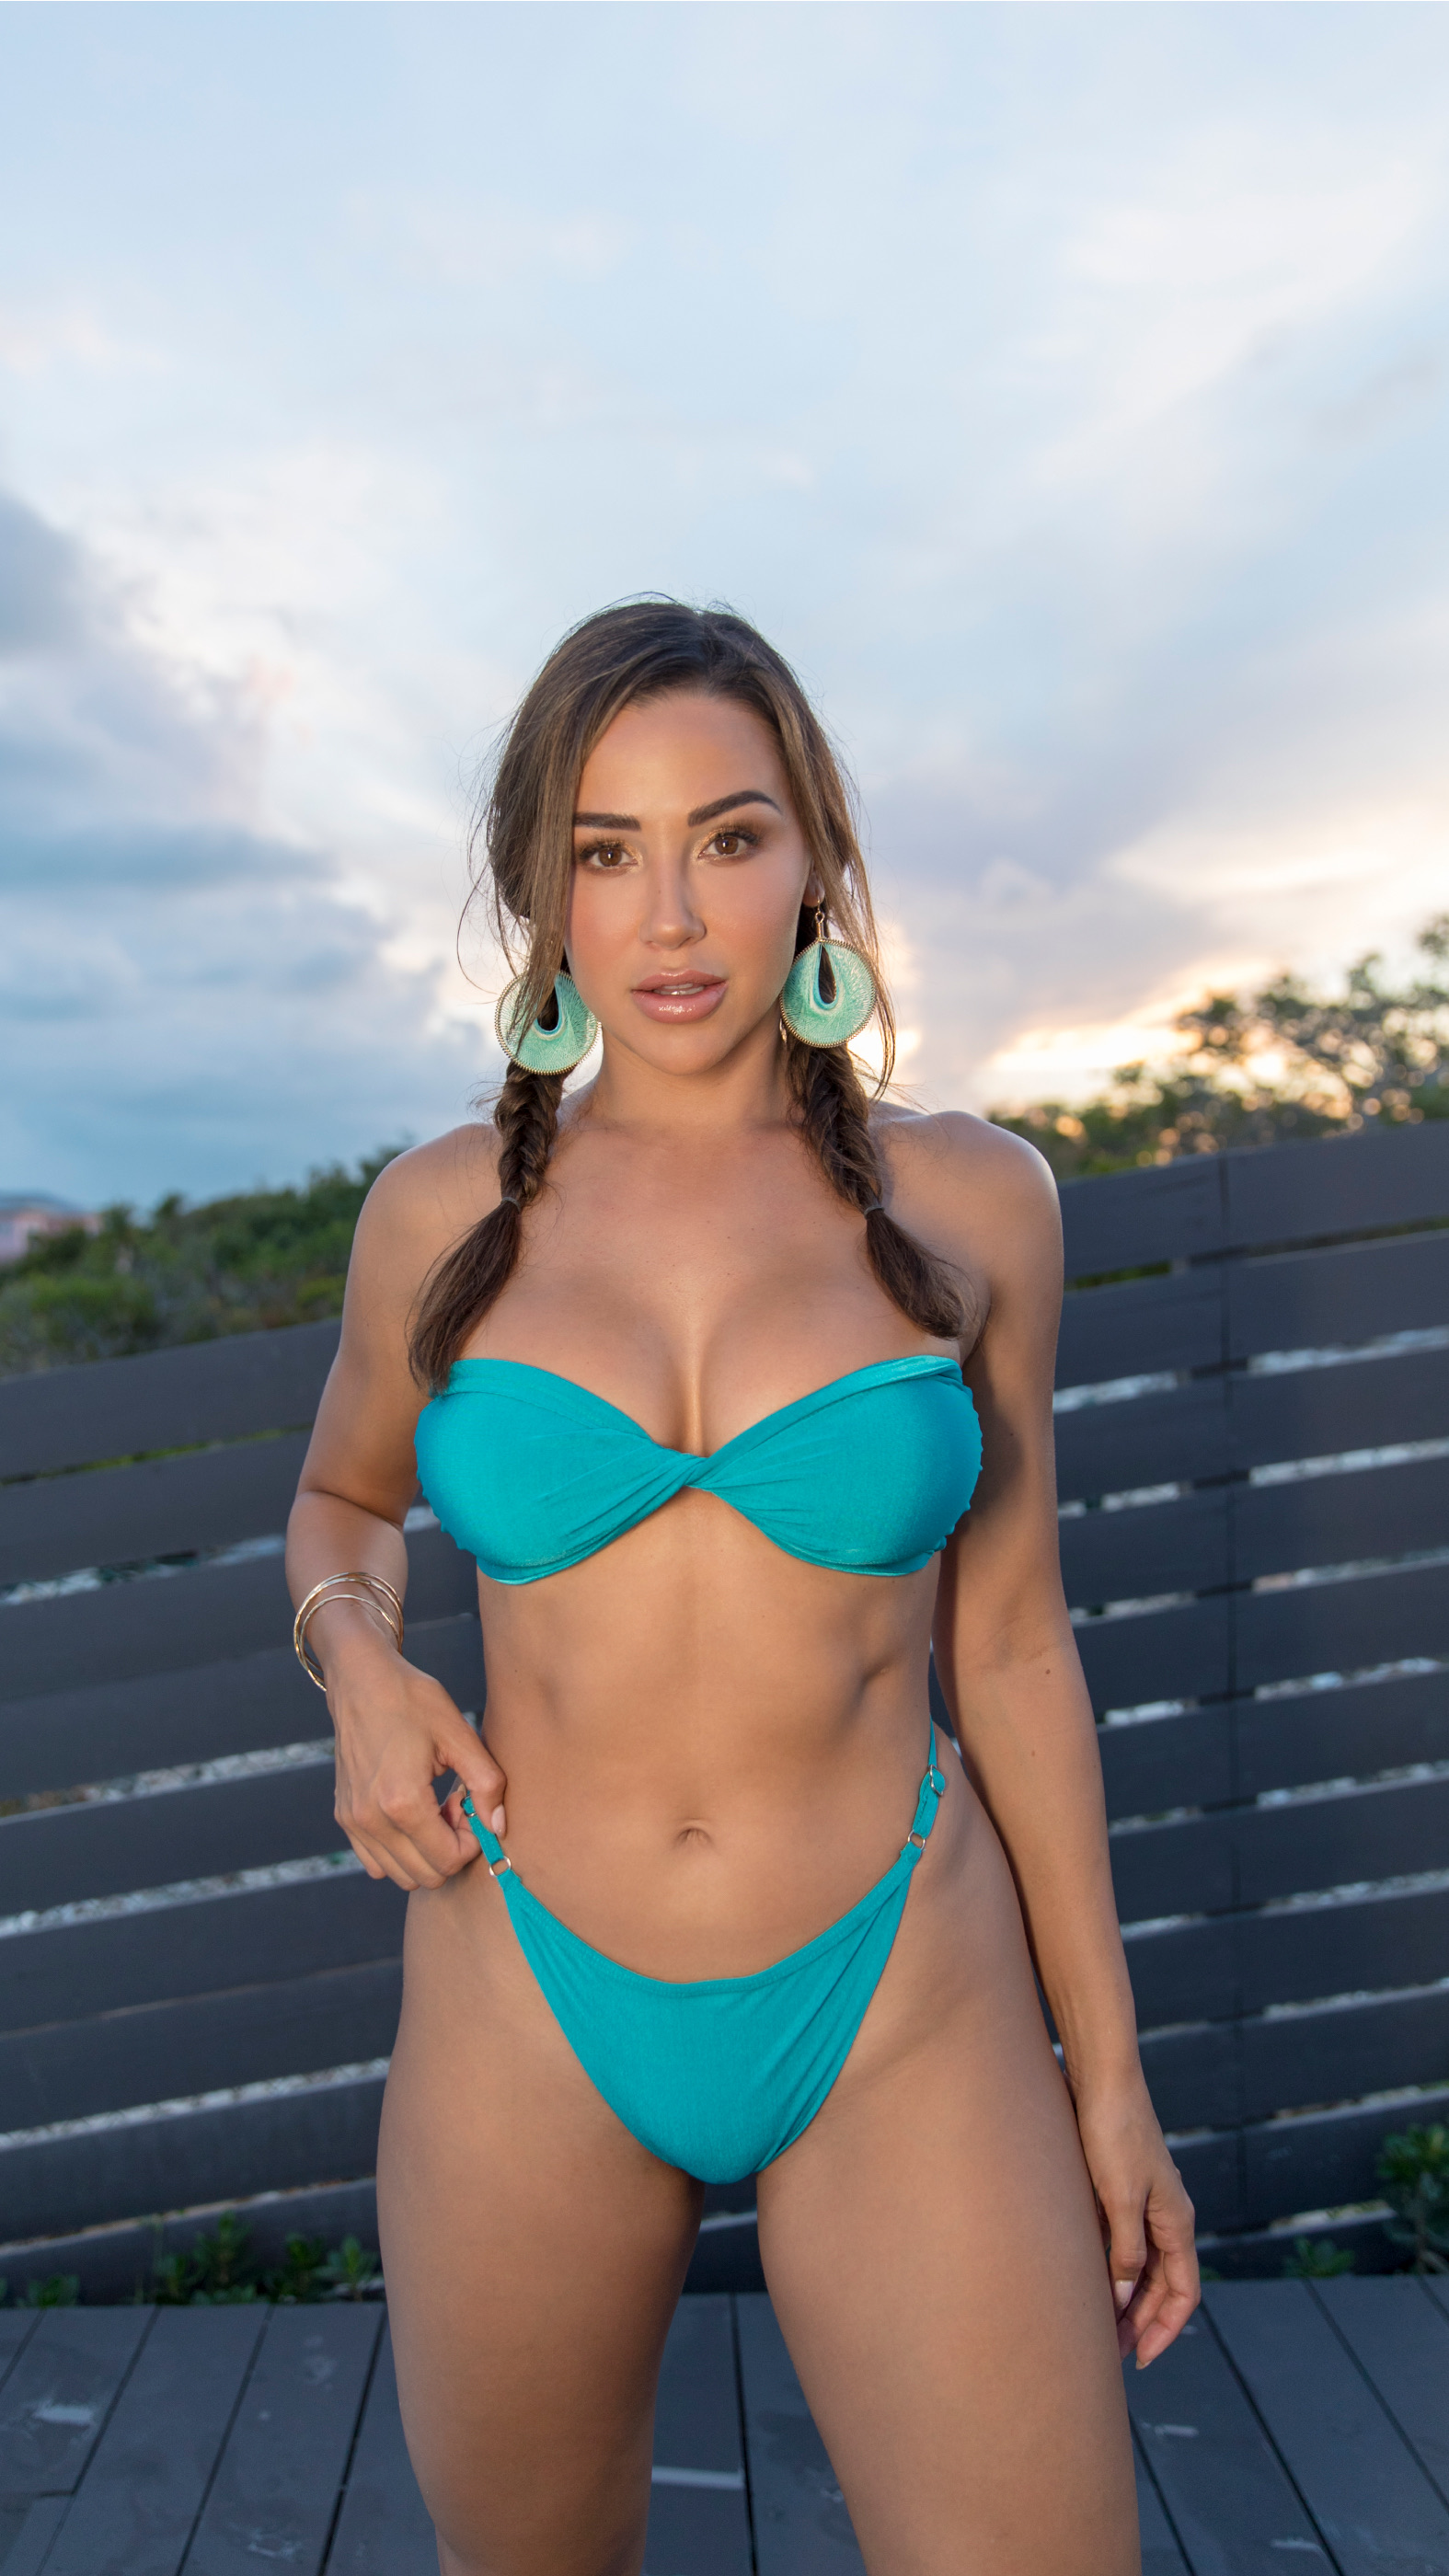 Ana Cheri Nude Onlyfans Leaked 0020